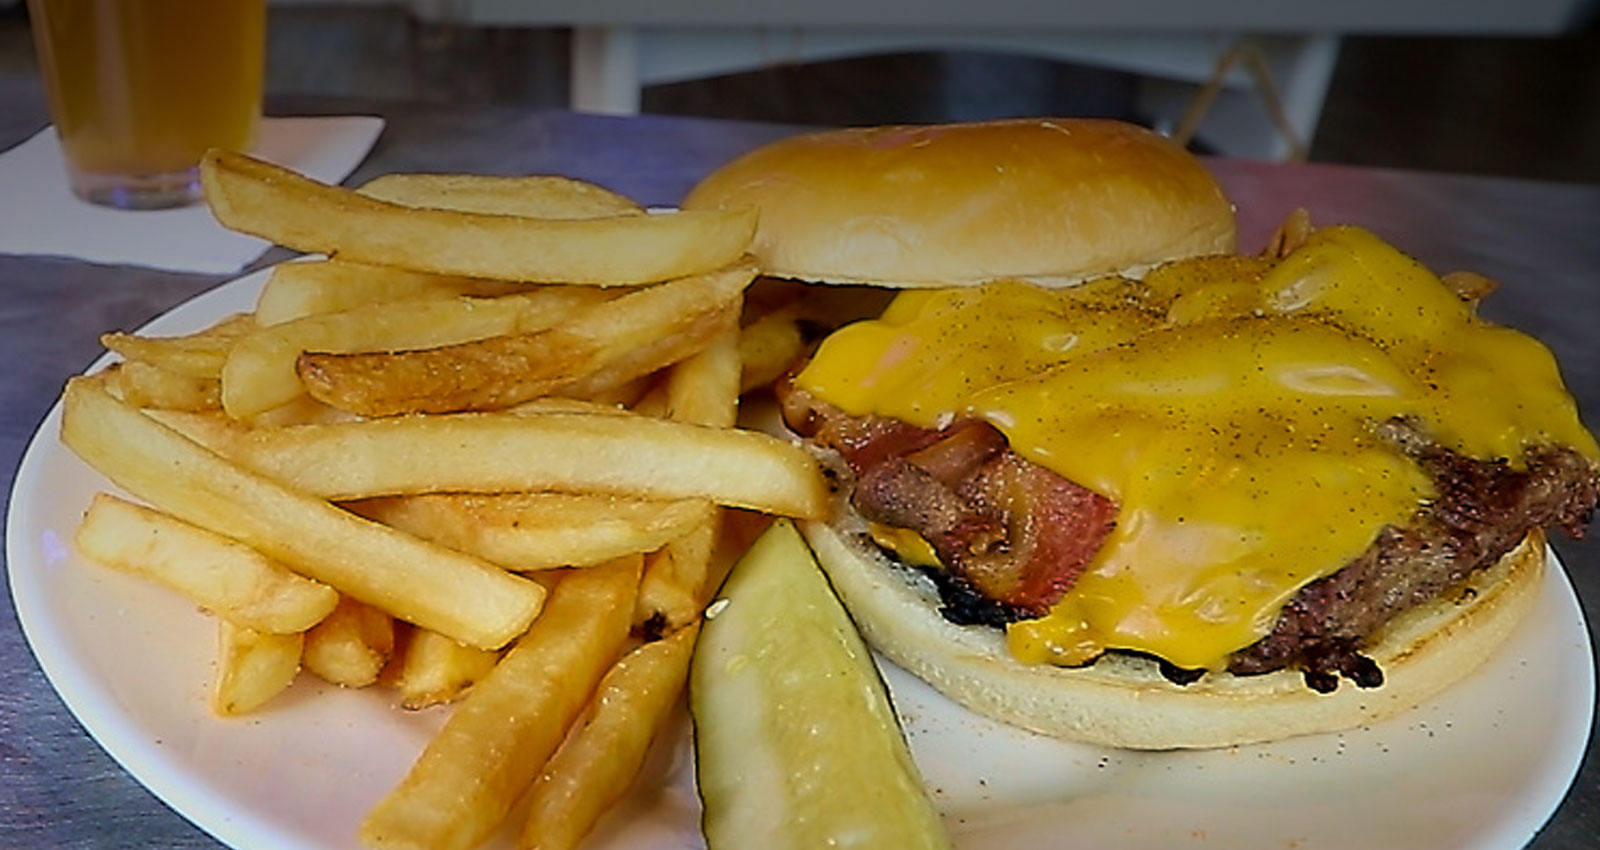 Bacon Cheeseburgers, Fries and Drink